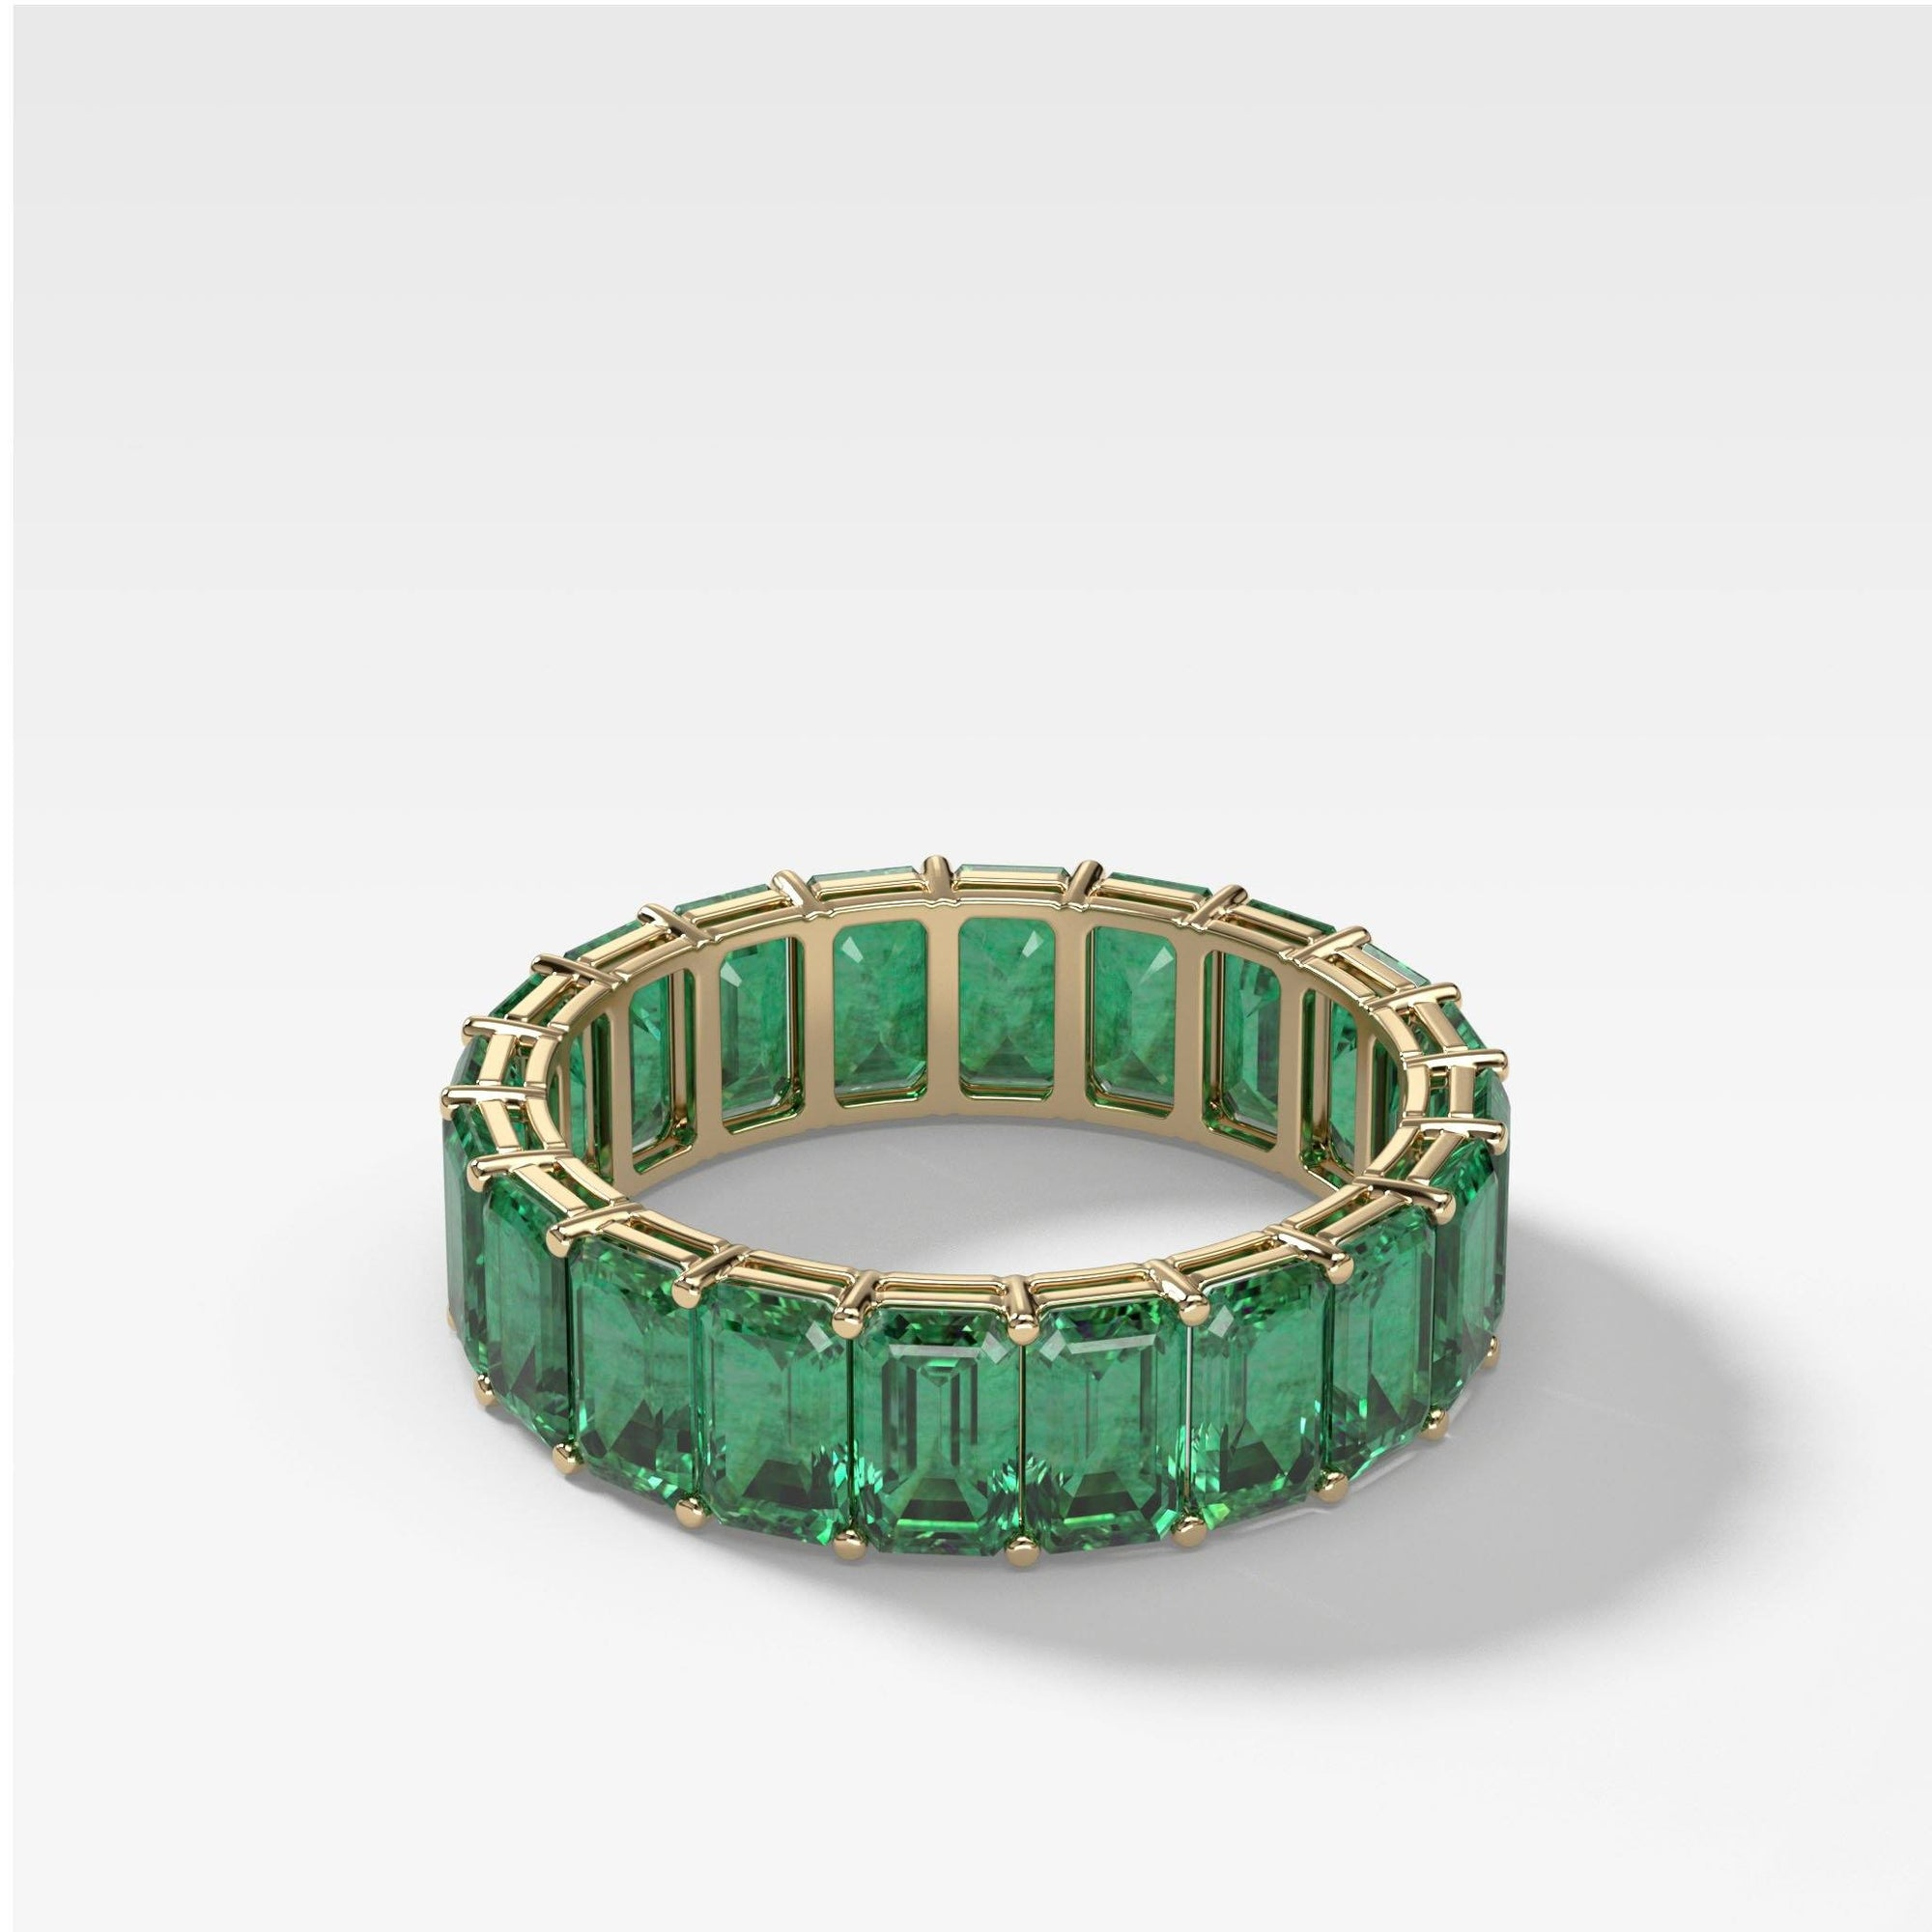 Green Emerald Emerald Cut Eternity band in Yellow Gold by Good Stone